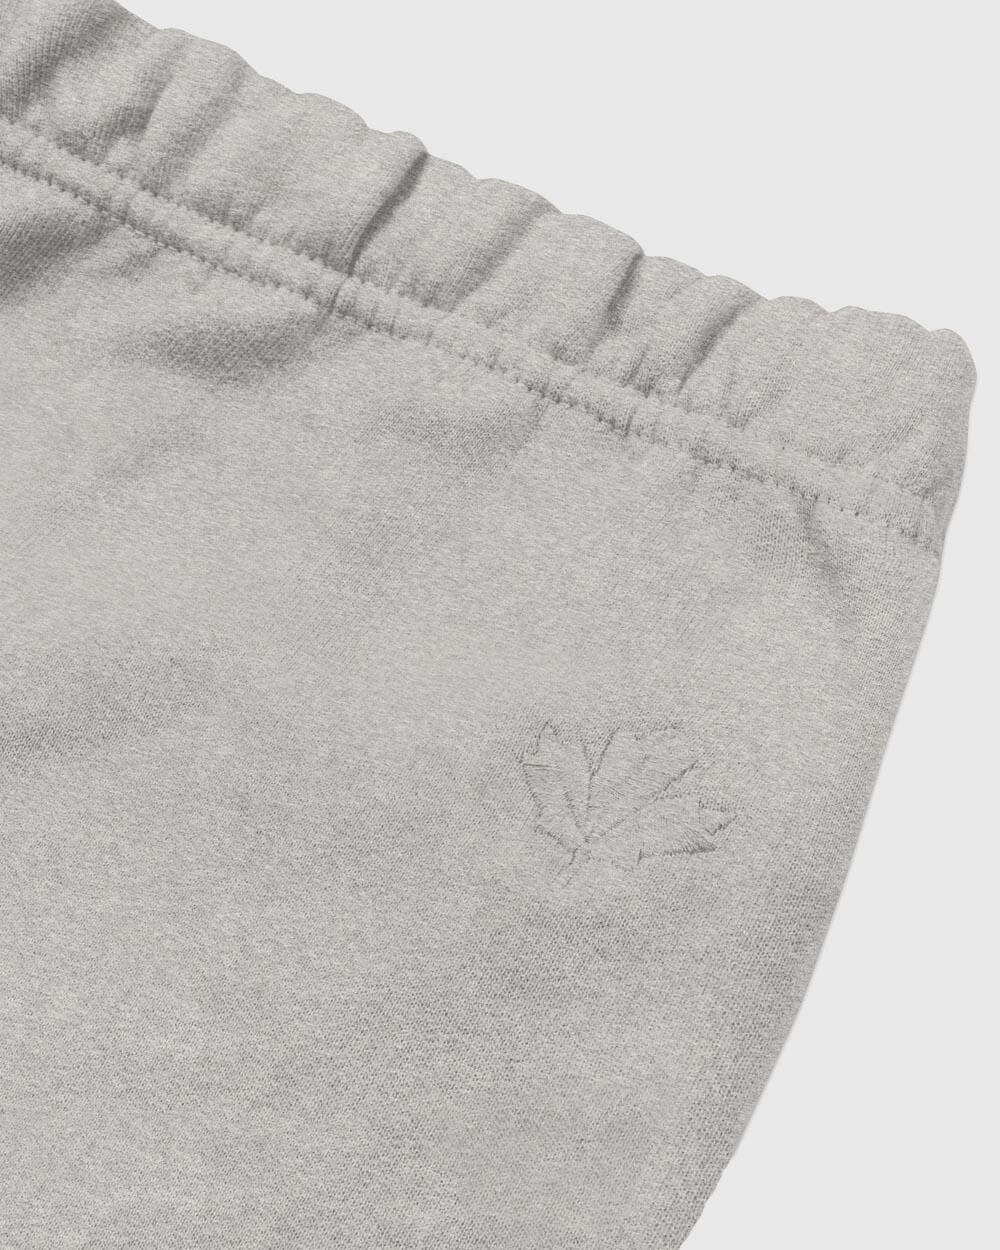 OVO x ROOTS SWEATPANT - HEATHER GREY